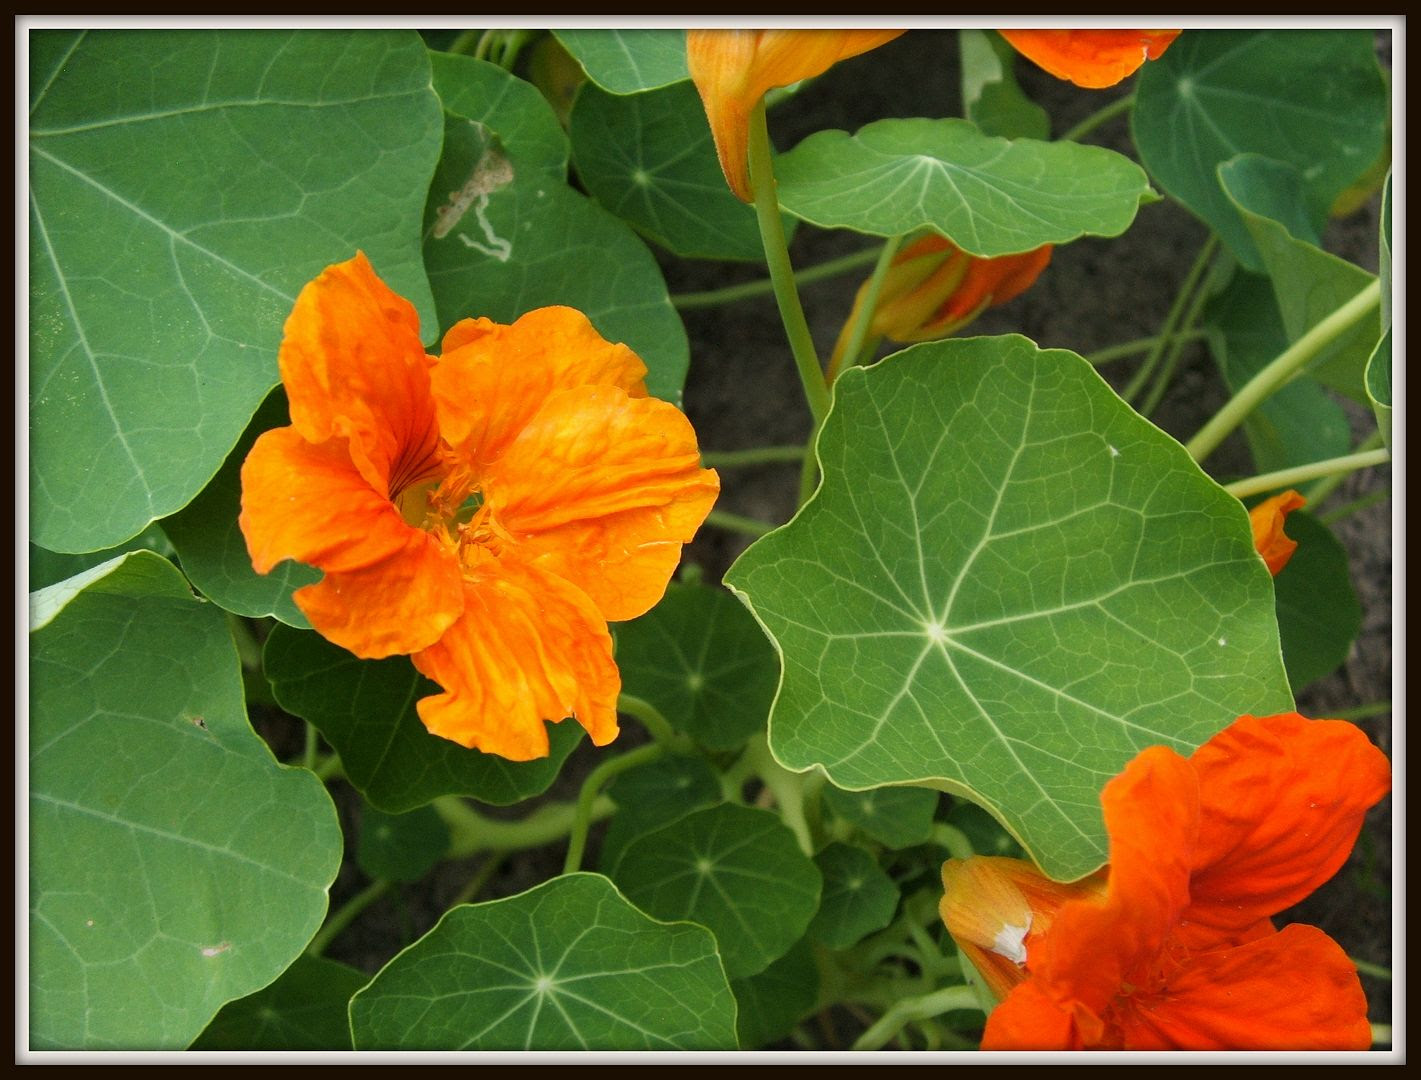 Nasturtiums by Angie Ouellette-Tower for godsgrowinggarden.com photo 029_zpsfca6f89f.jpg